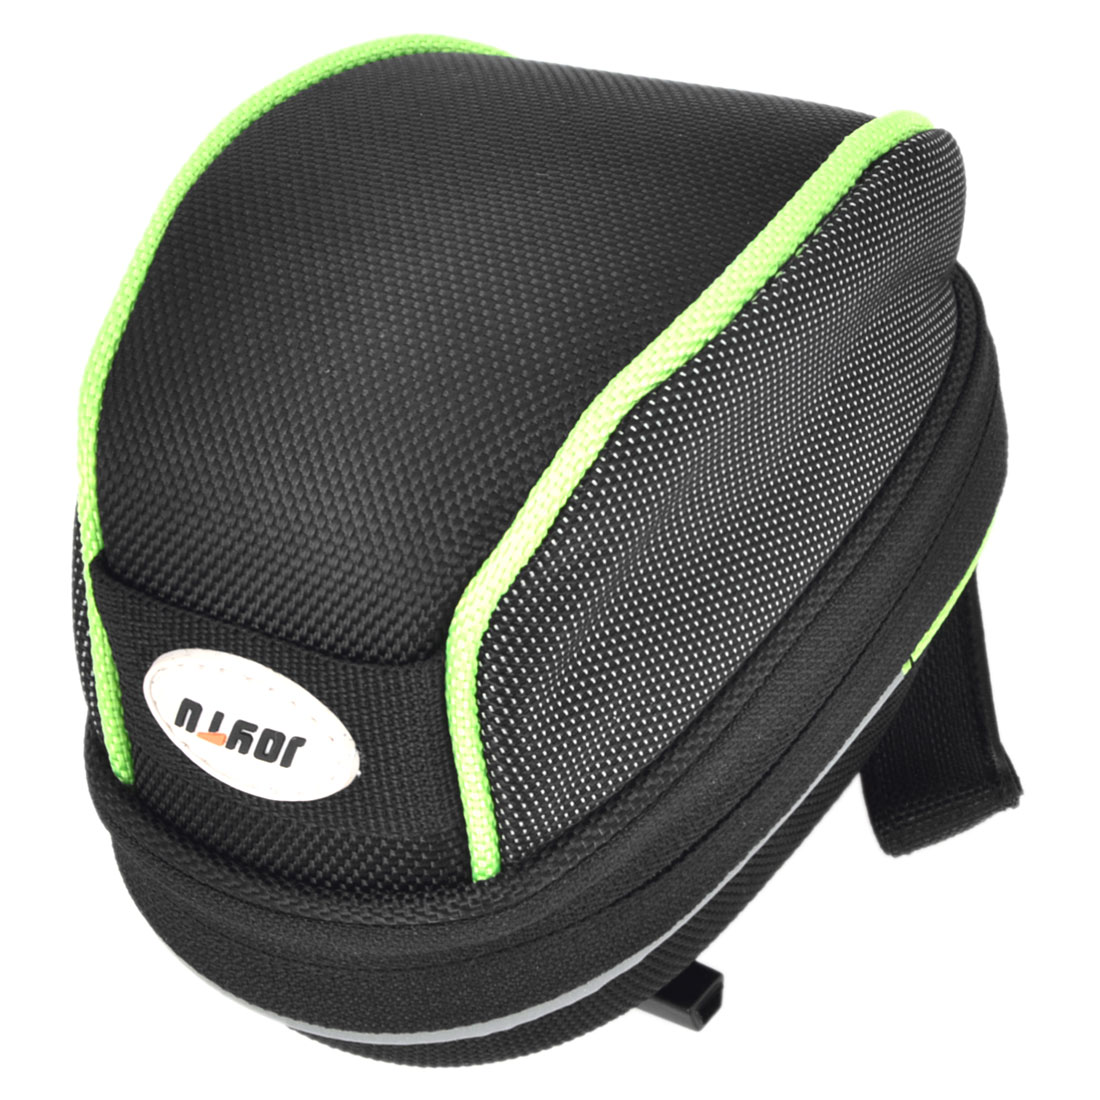 Unique Bargains Outdoor Cycling Zipper Closure Saddle Pouch Seat Tail Bag Holder Black Green